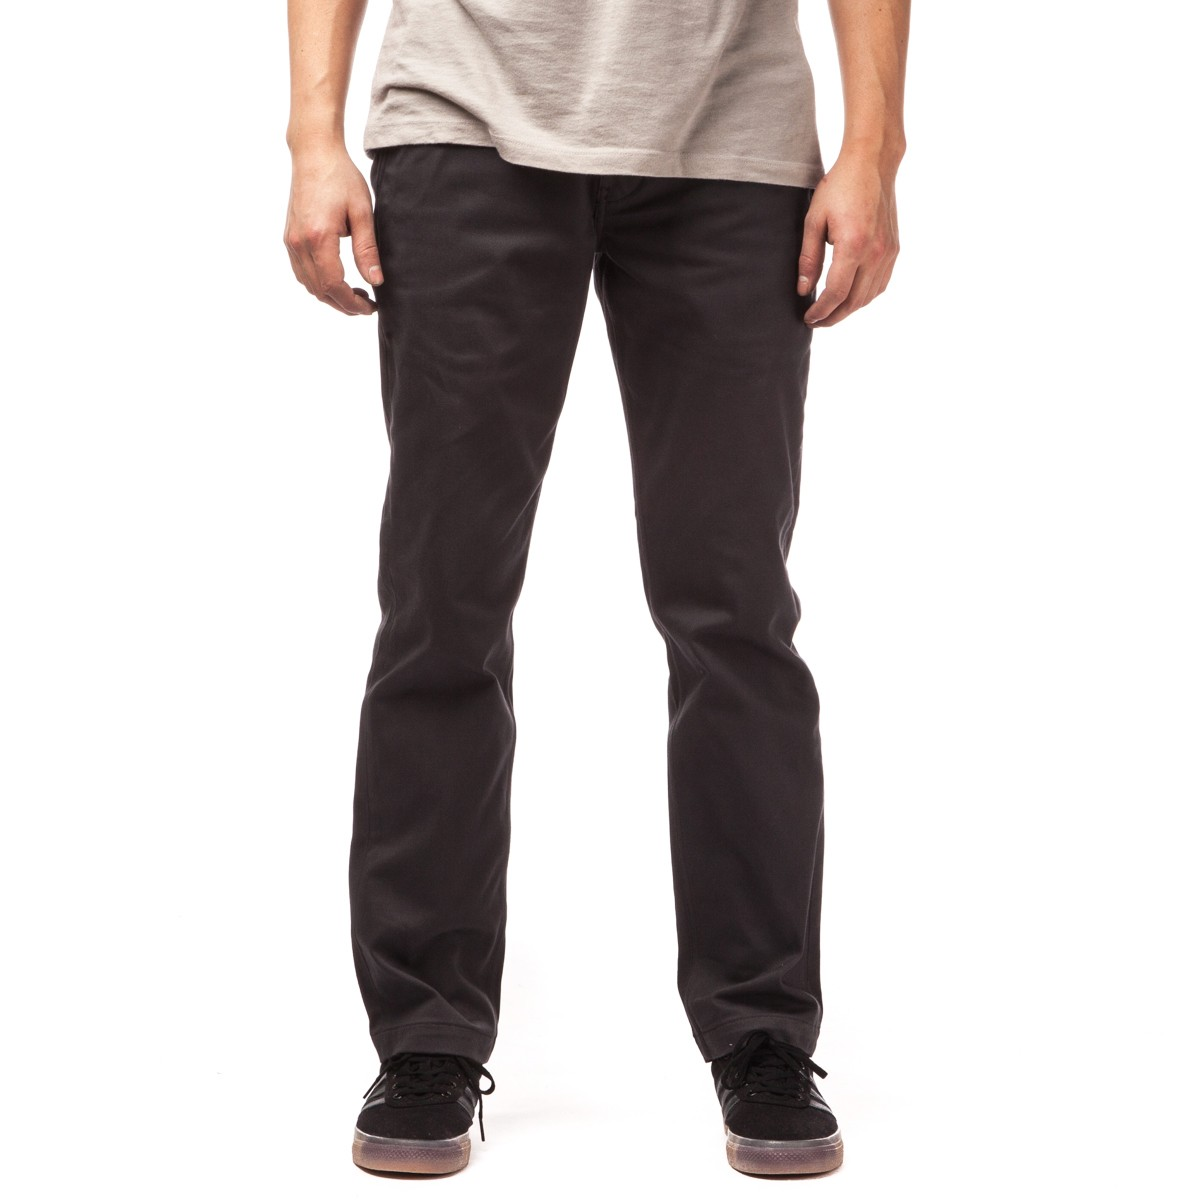 Levi's Skate Work Pants - Graphite